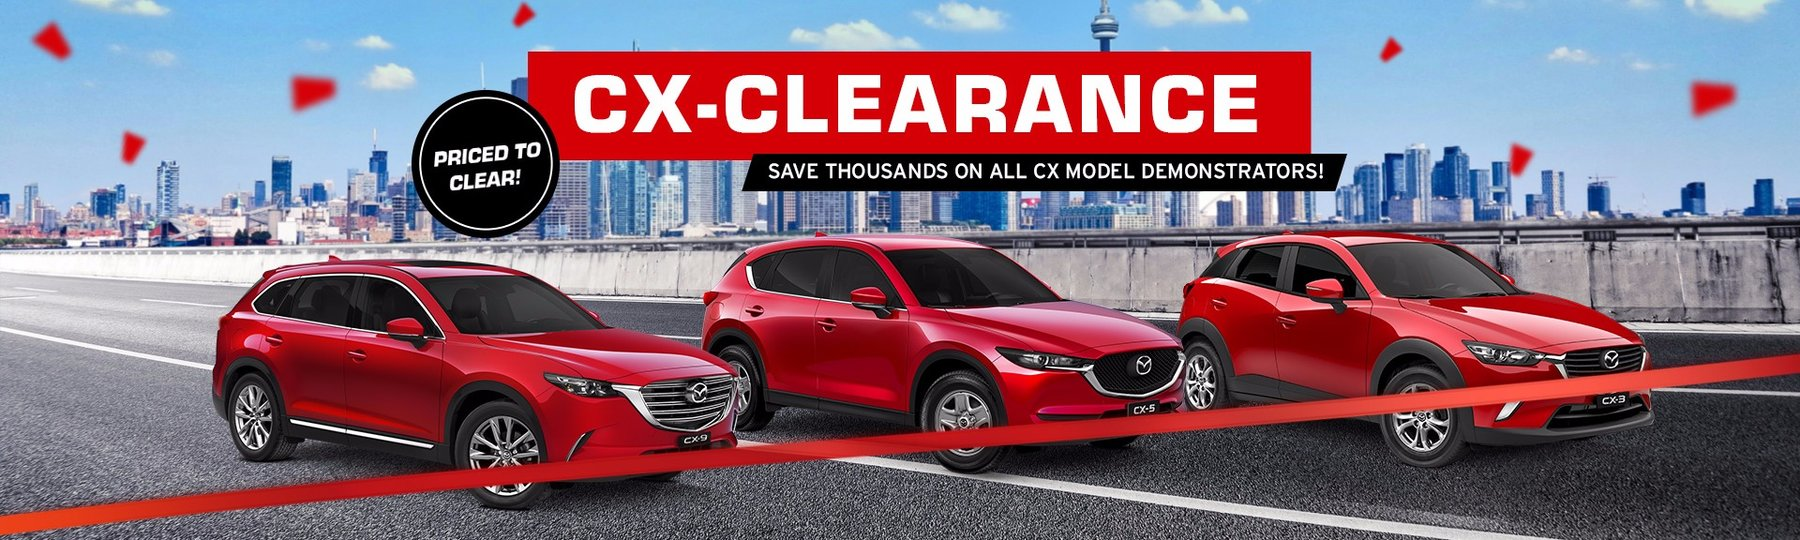 cx-clearance